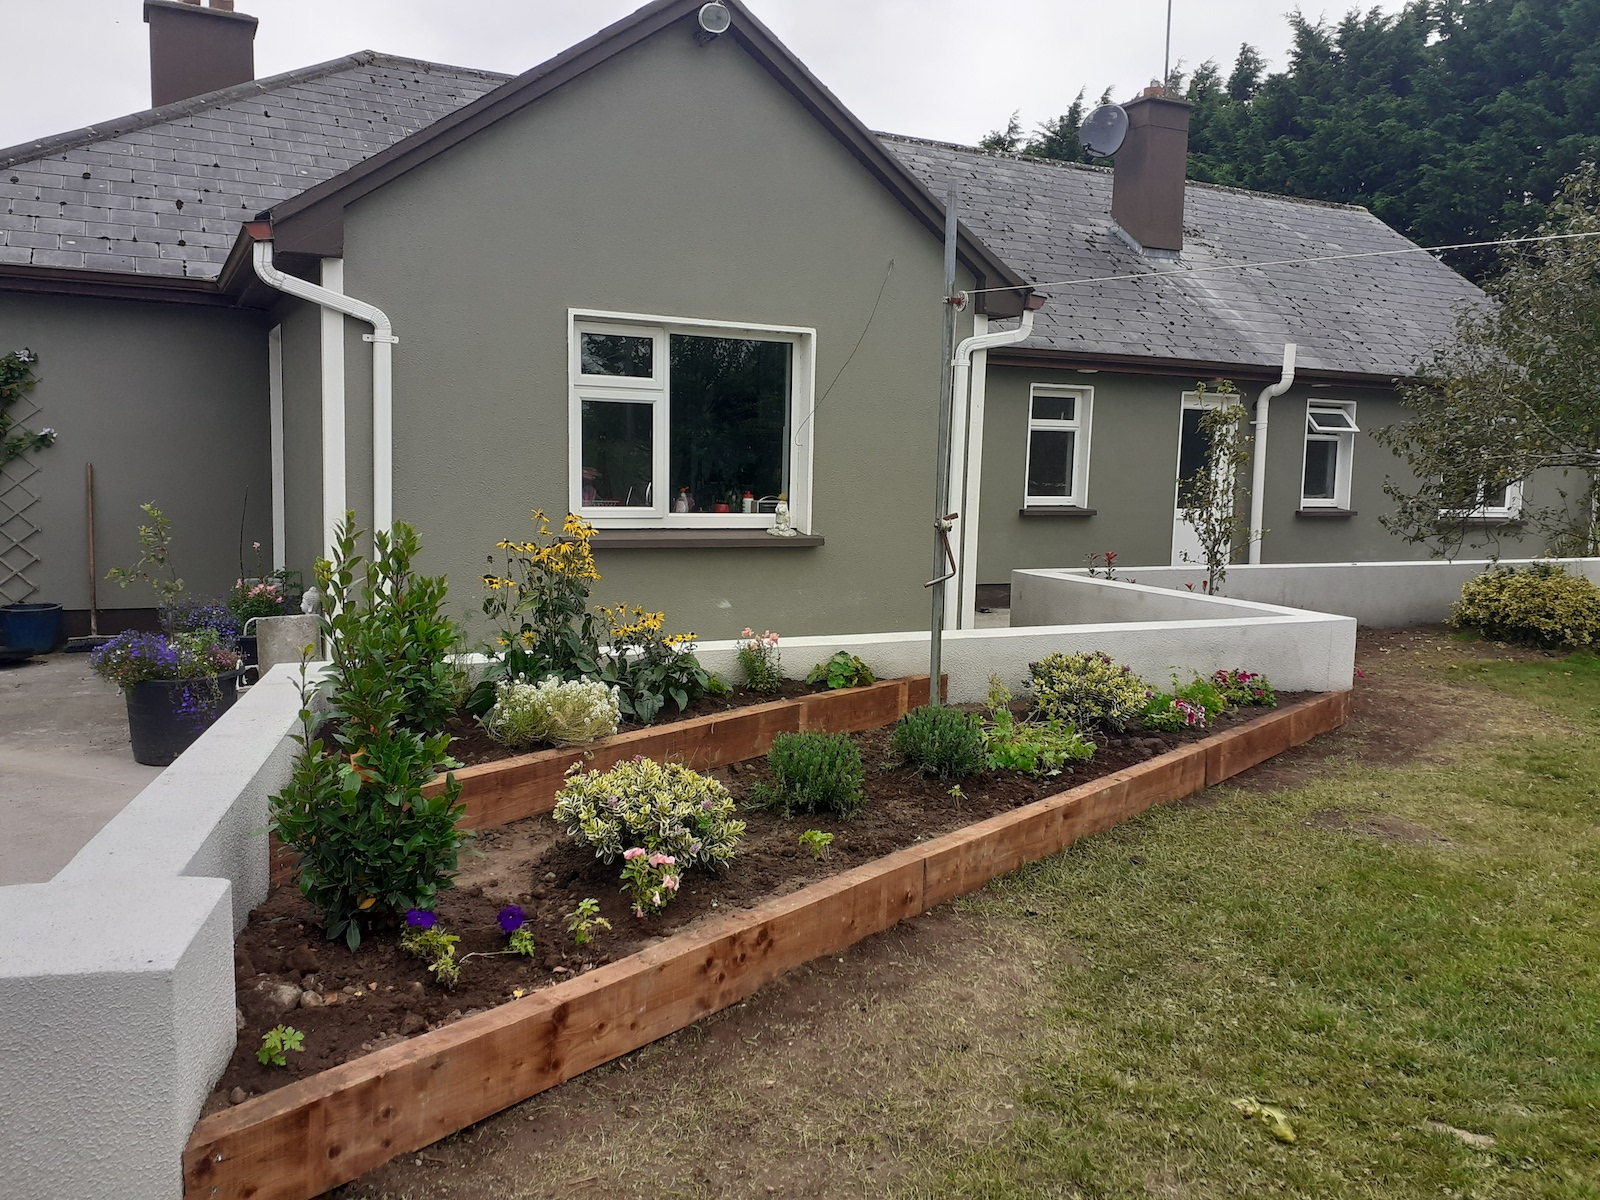 Flood retention and raised beds